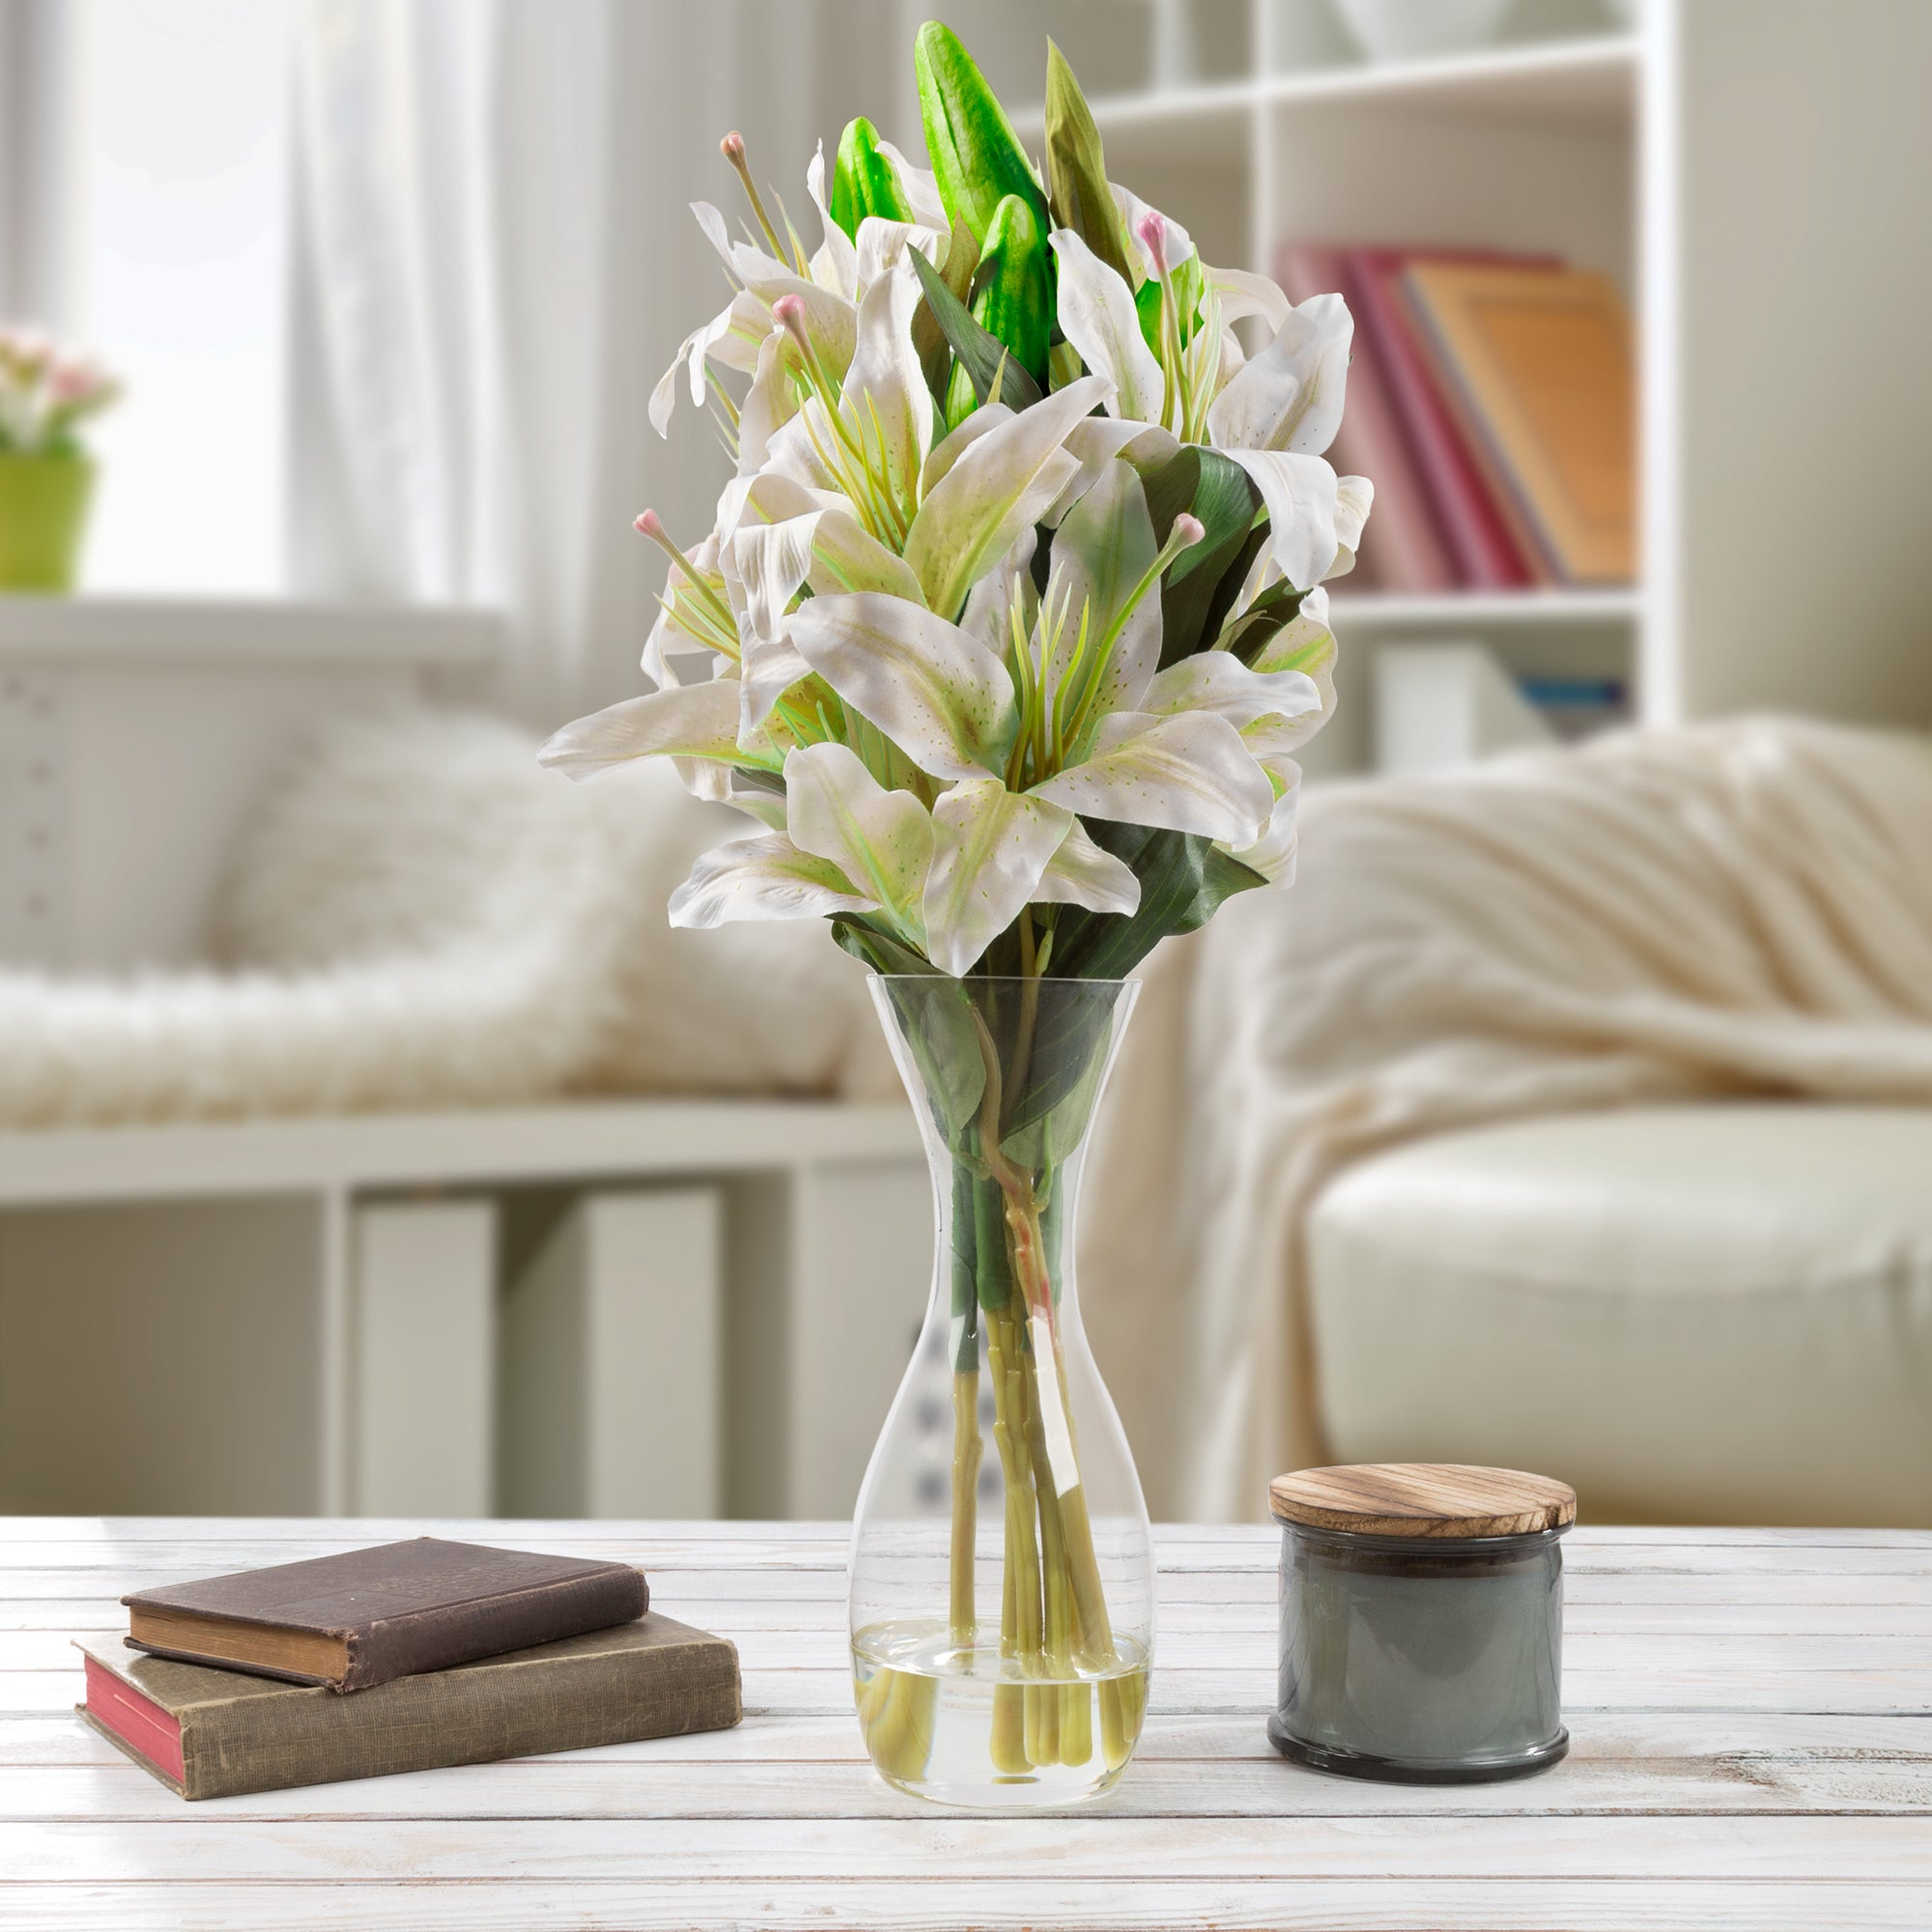 Shop tall lily artificial silk floral arrangement with vase and faux shop tall lily artificial silk floral arrangement with vase and faux water pure garden white on sale free shipping today overstock 19205870 izmirmasajfo